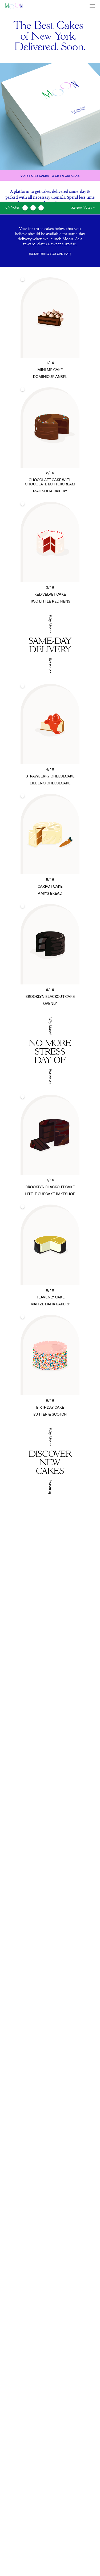 Example of Design for Food & Drink, Food, Baked Goods, Mobile Landing Page by moondeliverscakes.com | Mobile Landing Page Design